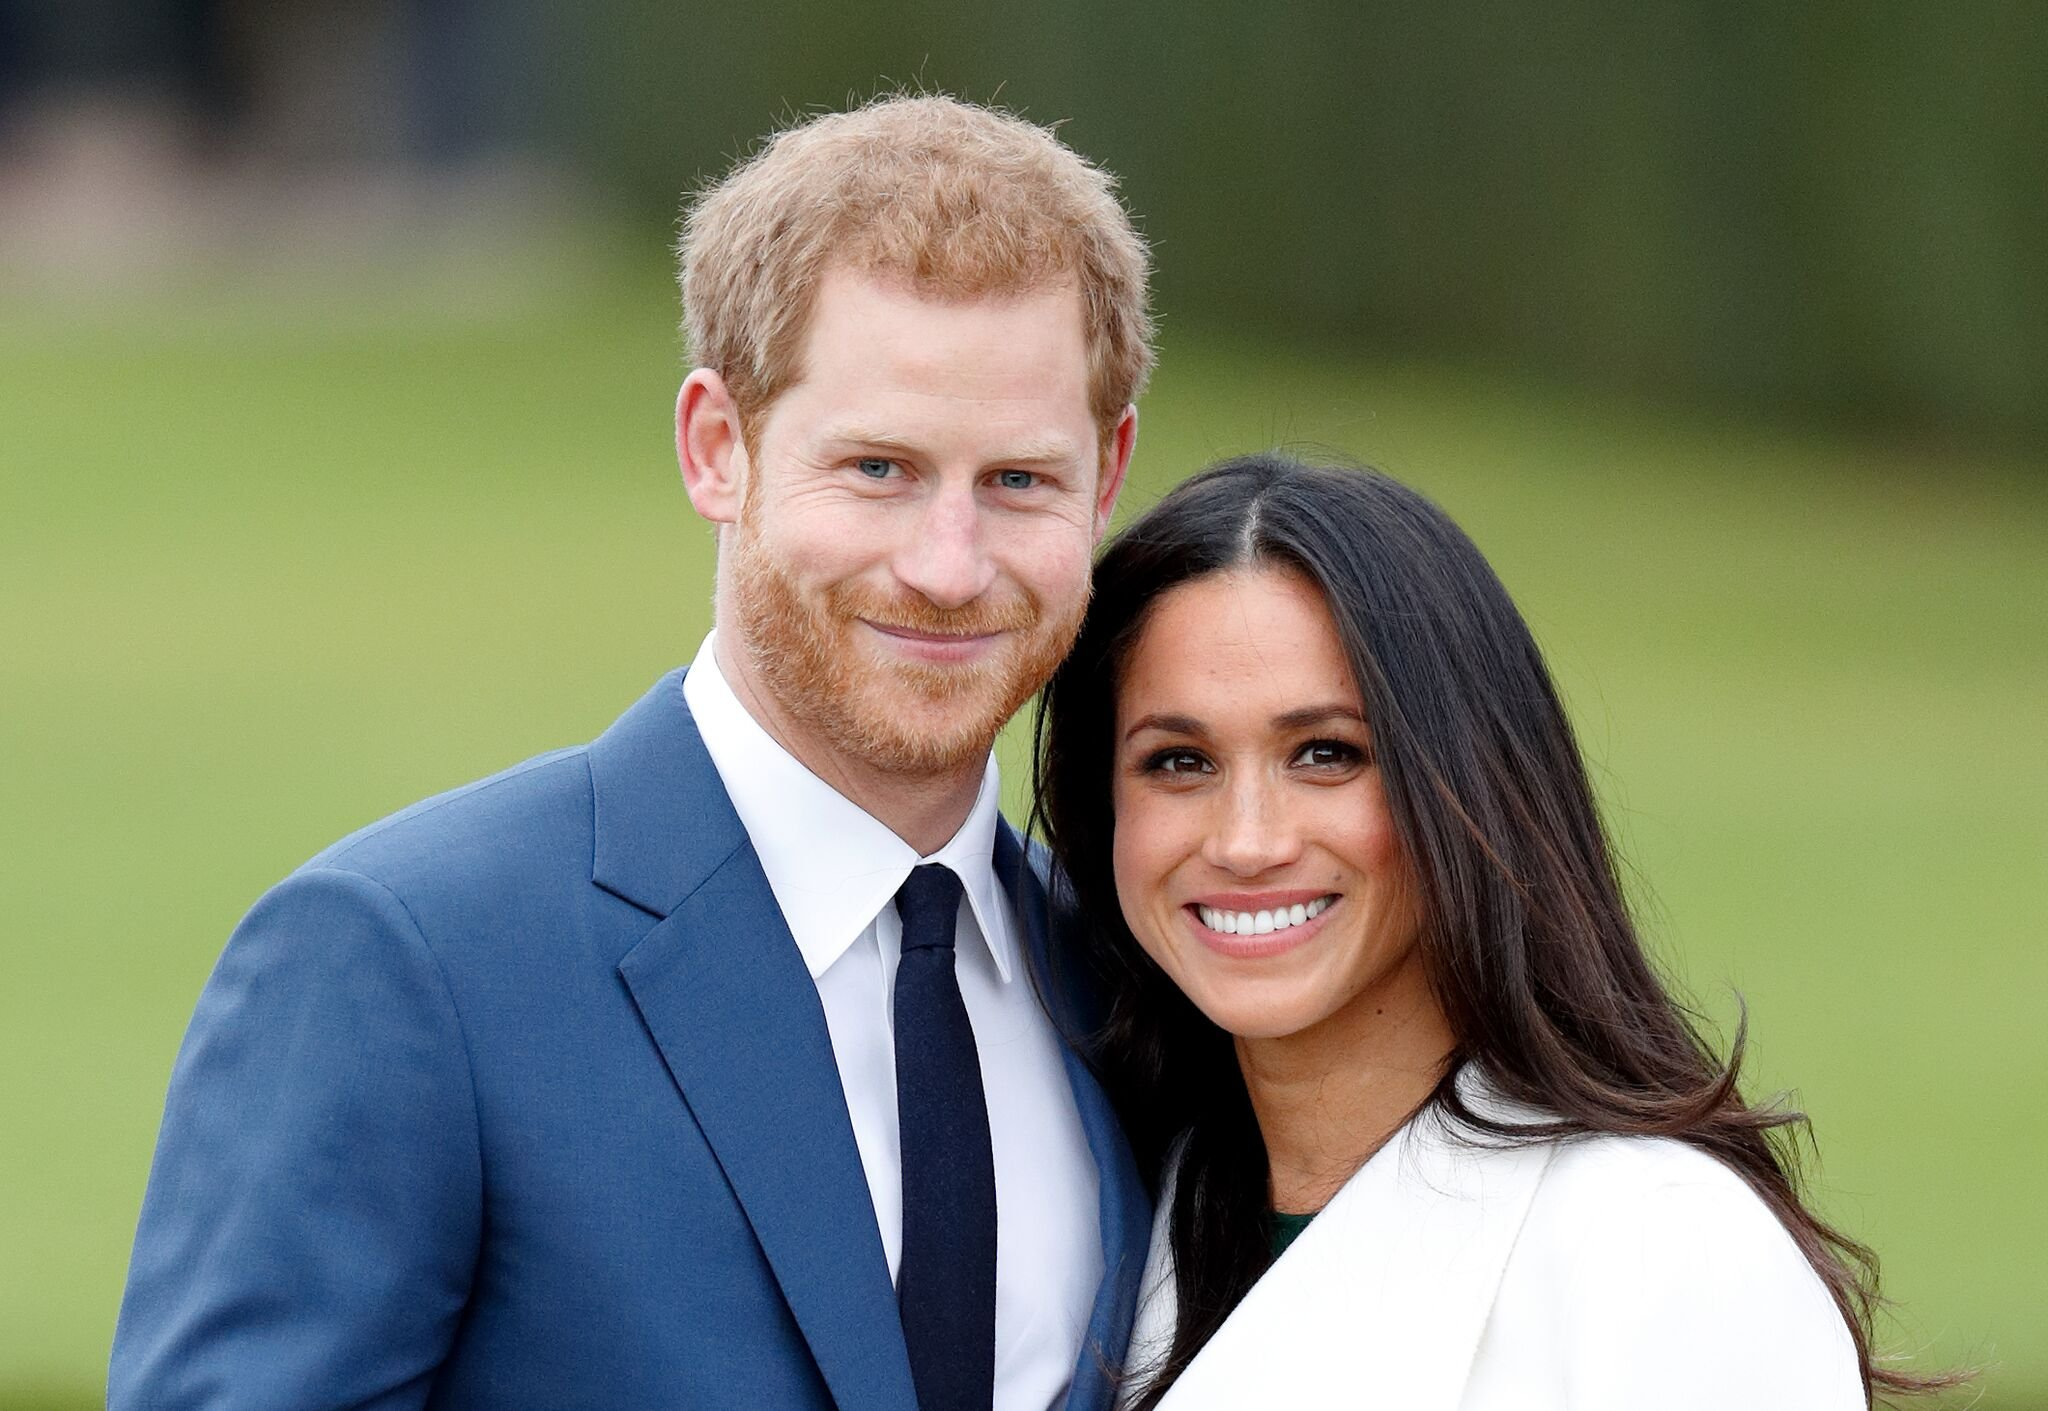 Prince Harry and Meghan Markle attend an official photocall to announce their engagement at The Sunken Gardens, Kensington Palace on November 27, 2017 | Photo: Getty Images